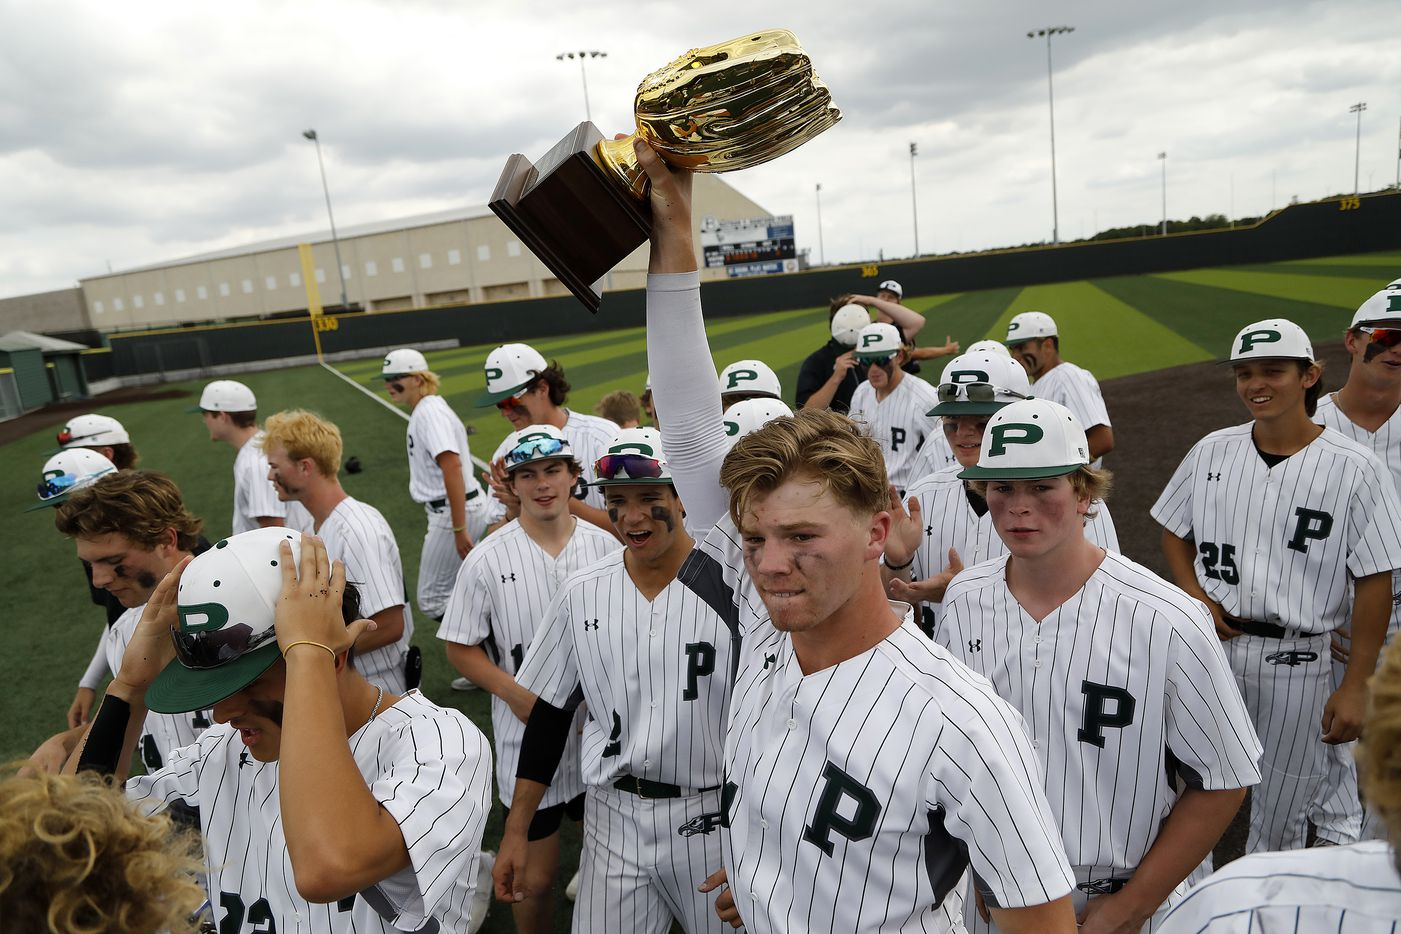 Prosper catcher Easton Carmichael (11) hoists up the area trophy after his team's victory as Prosper High School hosted Arlington Martin High School in a series final 6A Region I area round playoff game on Saturday afternoon, May 15, 2021. (Stewart F. House/Special Contributor)